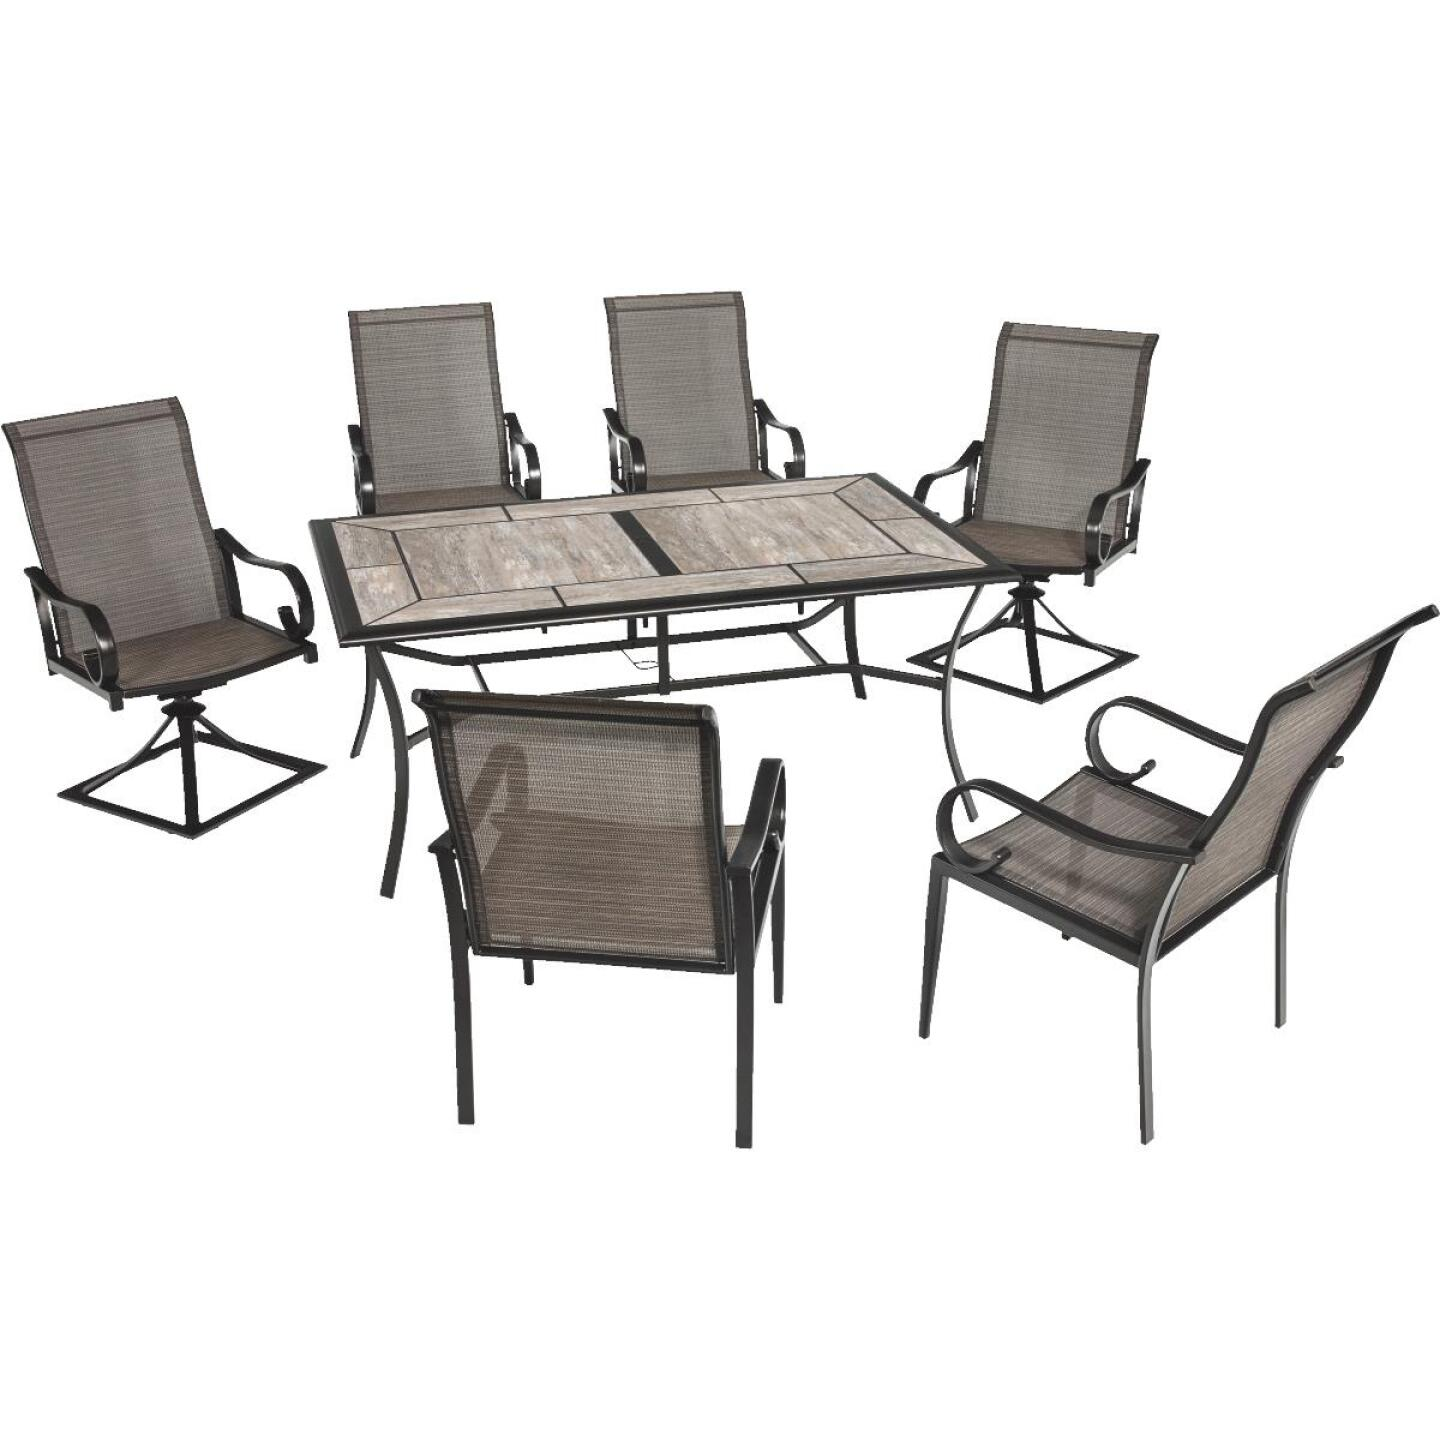 Outdoor Expressions Berkshire 7-Piece Dining Set Image 262